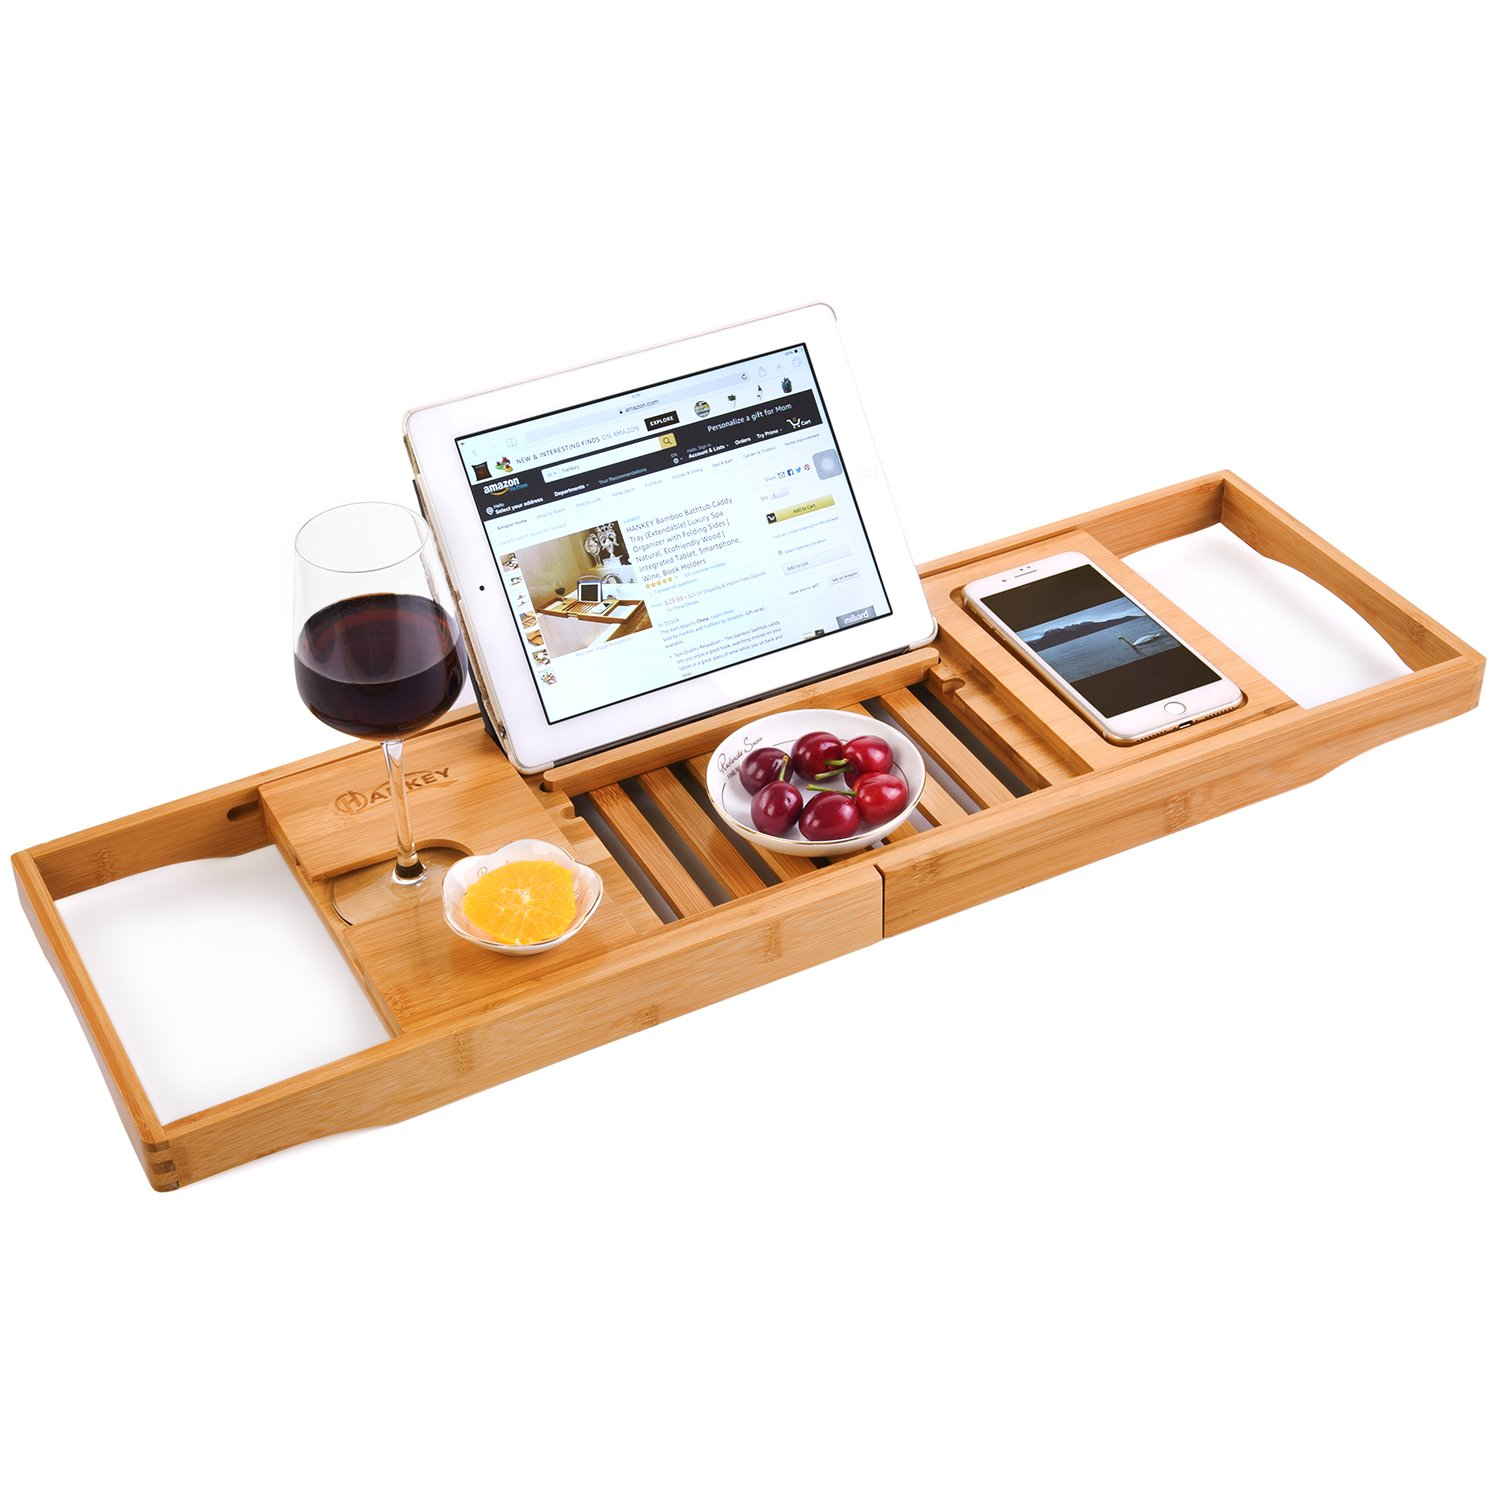 HANKEY Bamboo Bathtub Caddy Tray (Extendable) Luxury Spa Organizer with Folding Sides | Natural, Ecofriendly Wood | Integrated Tablet, Smartphone, Wine, Book Holders